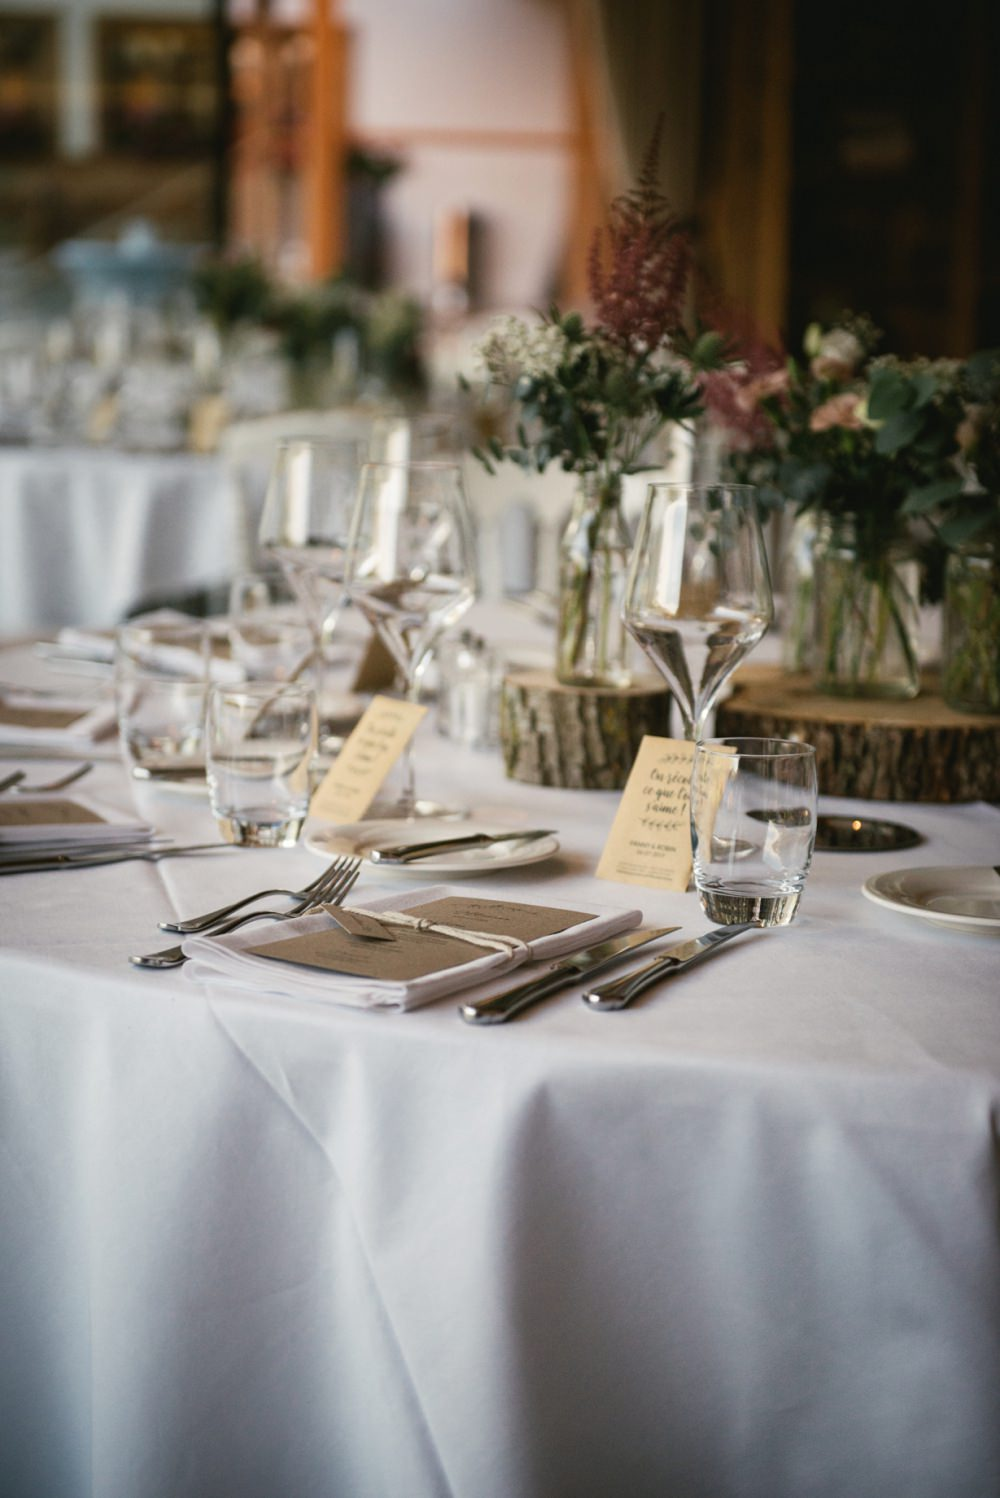 hote lrougement table during a wedding